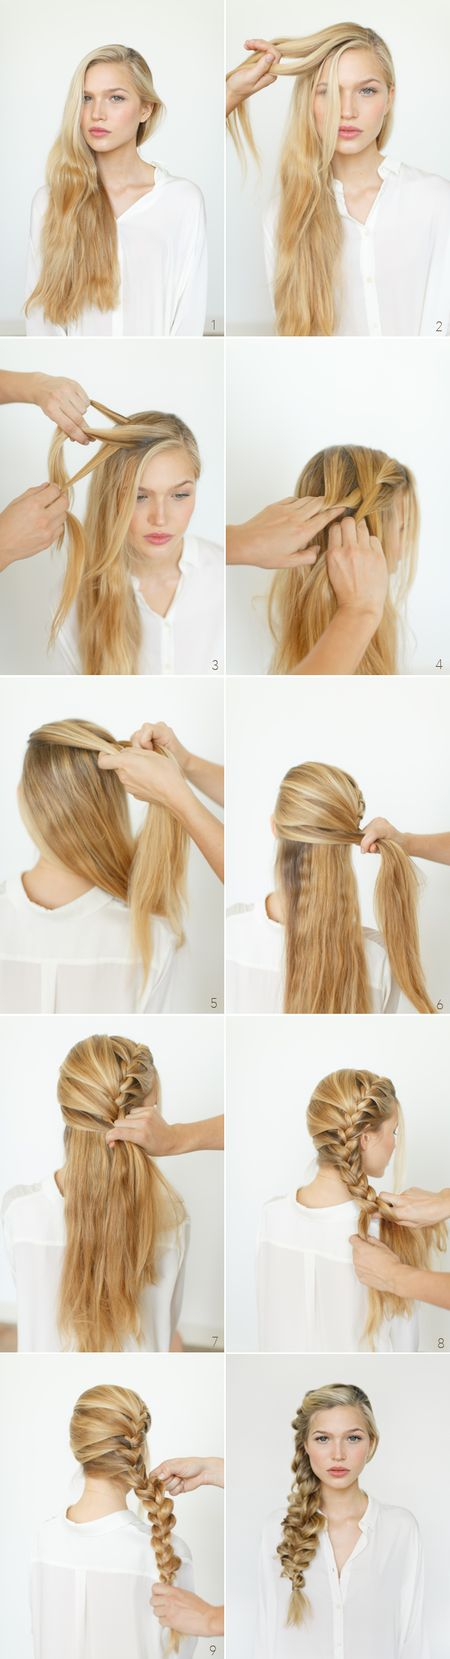 Romantic Side Braid - #sidebraid #hairstyle #hairtutorial #hairbraid #stylemotivation - bellashoot.com